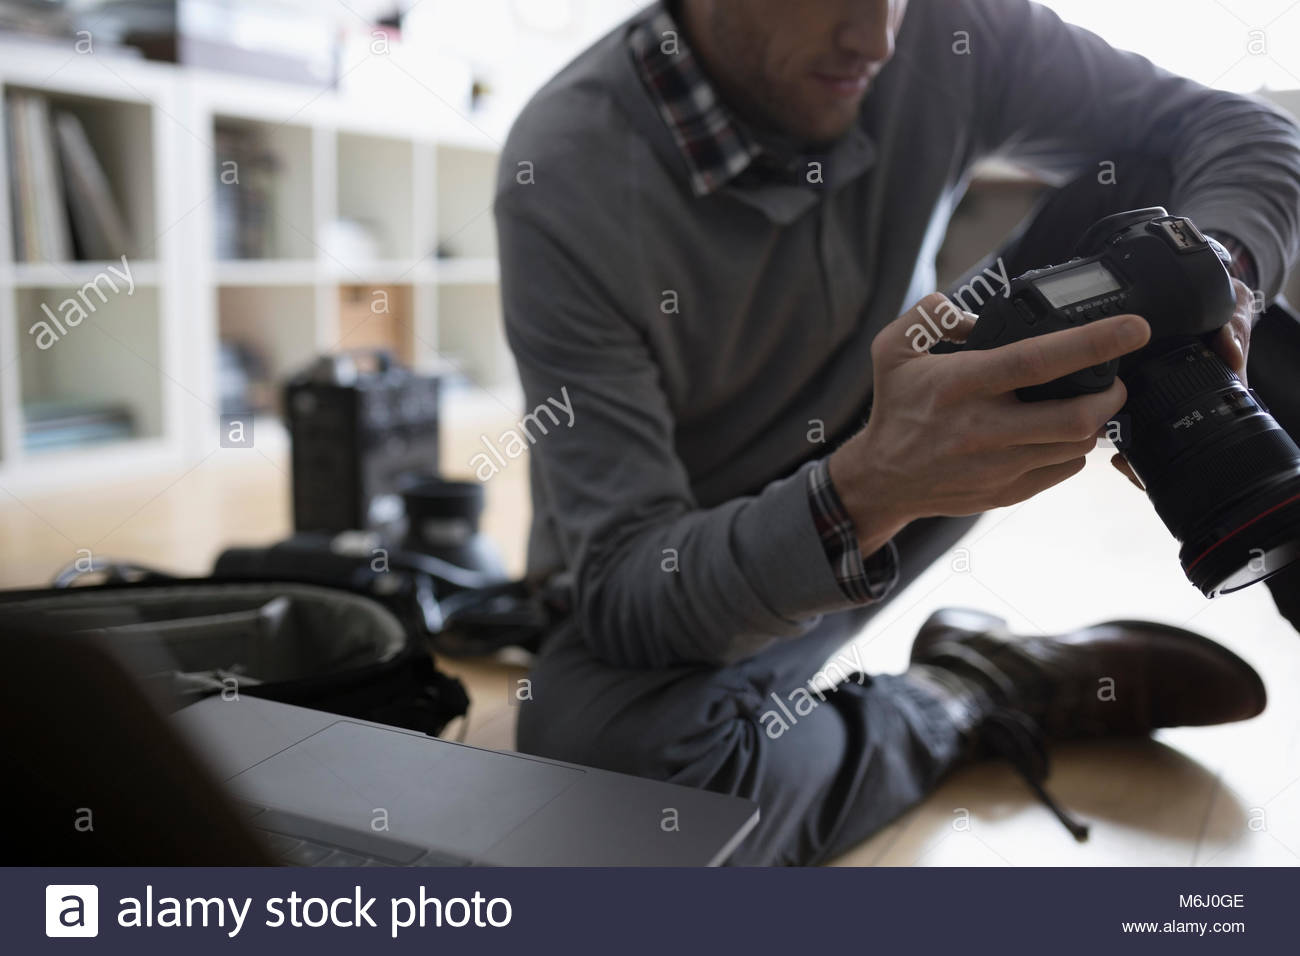 Male photographer using digital camera at laptop on floor - Stock Image